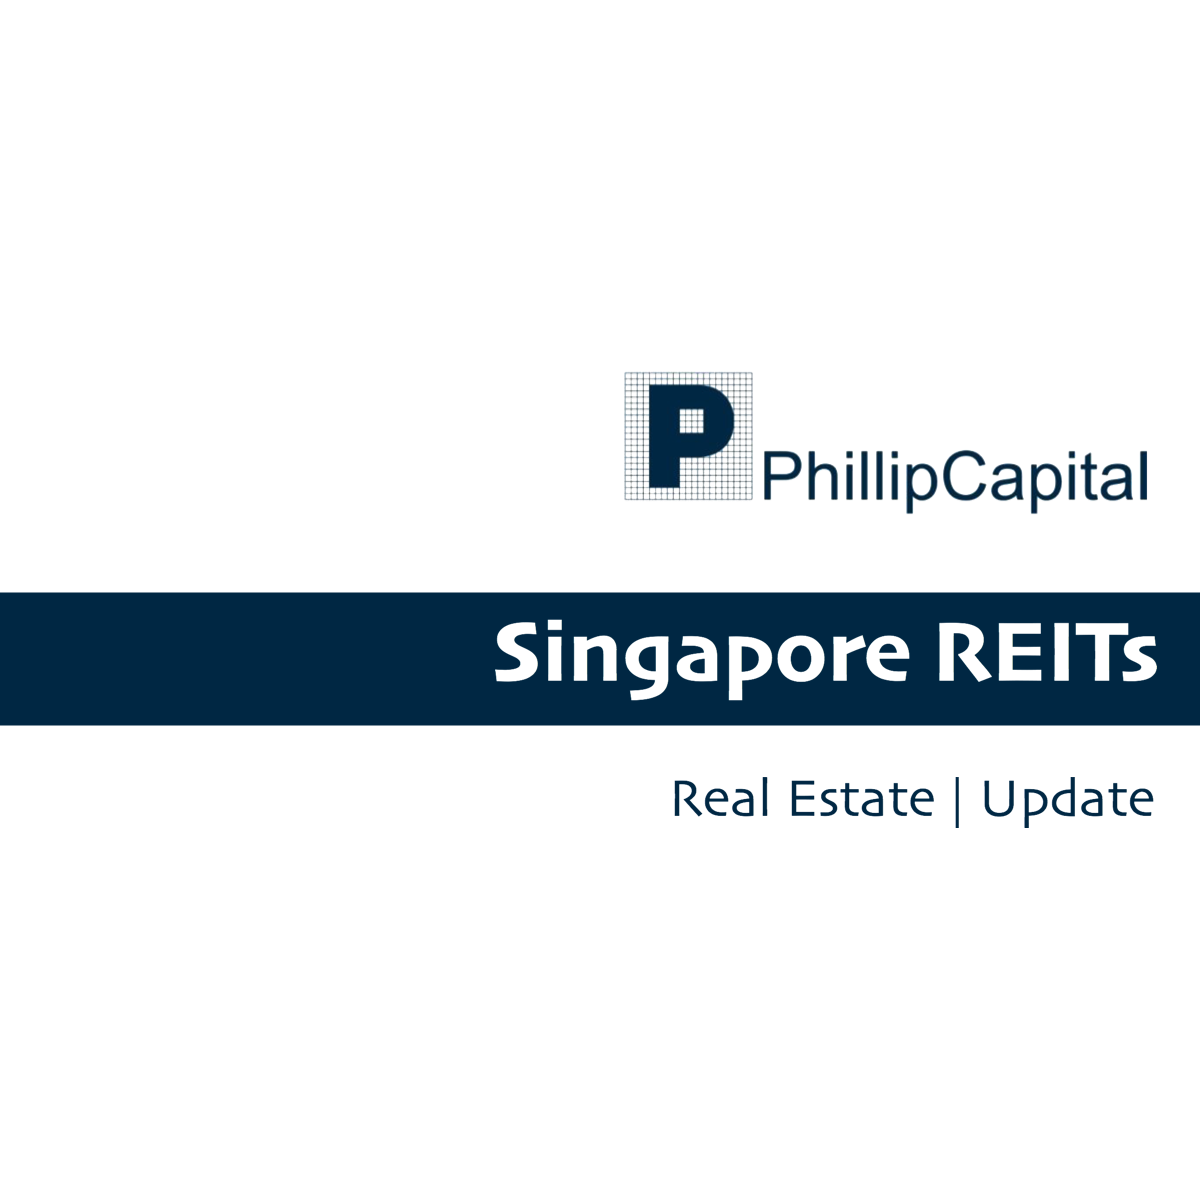 Singapore Industrial REITs - Phillip Securities 2017-08-18: Buying Opportunities Still Exist, Despite Sector Weakness